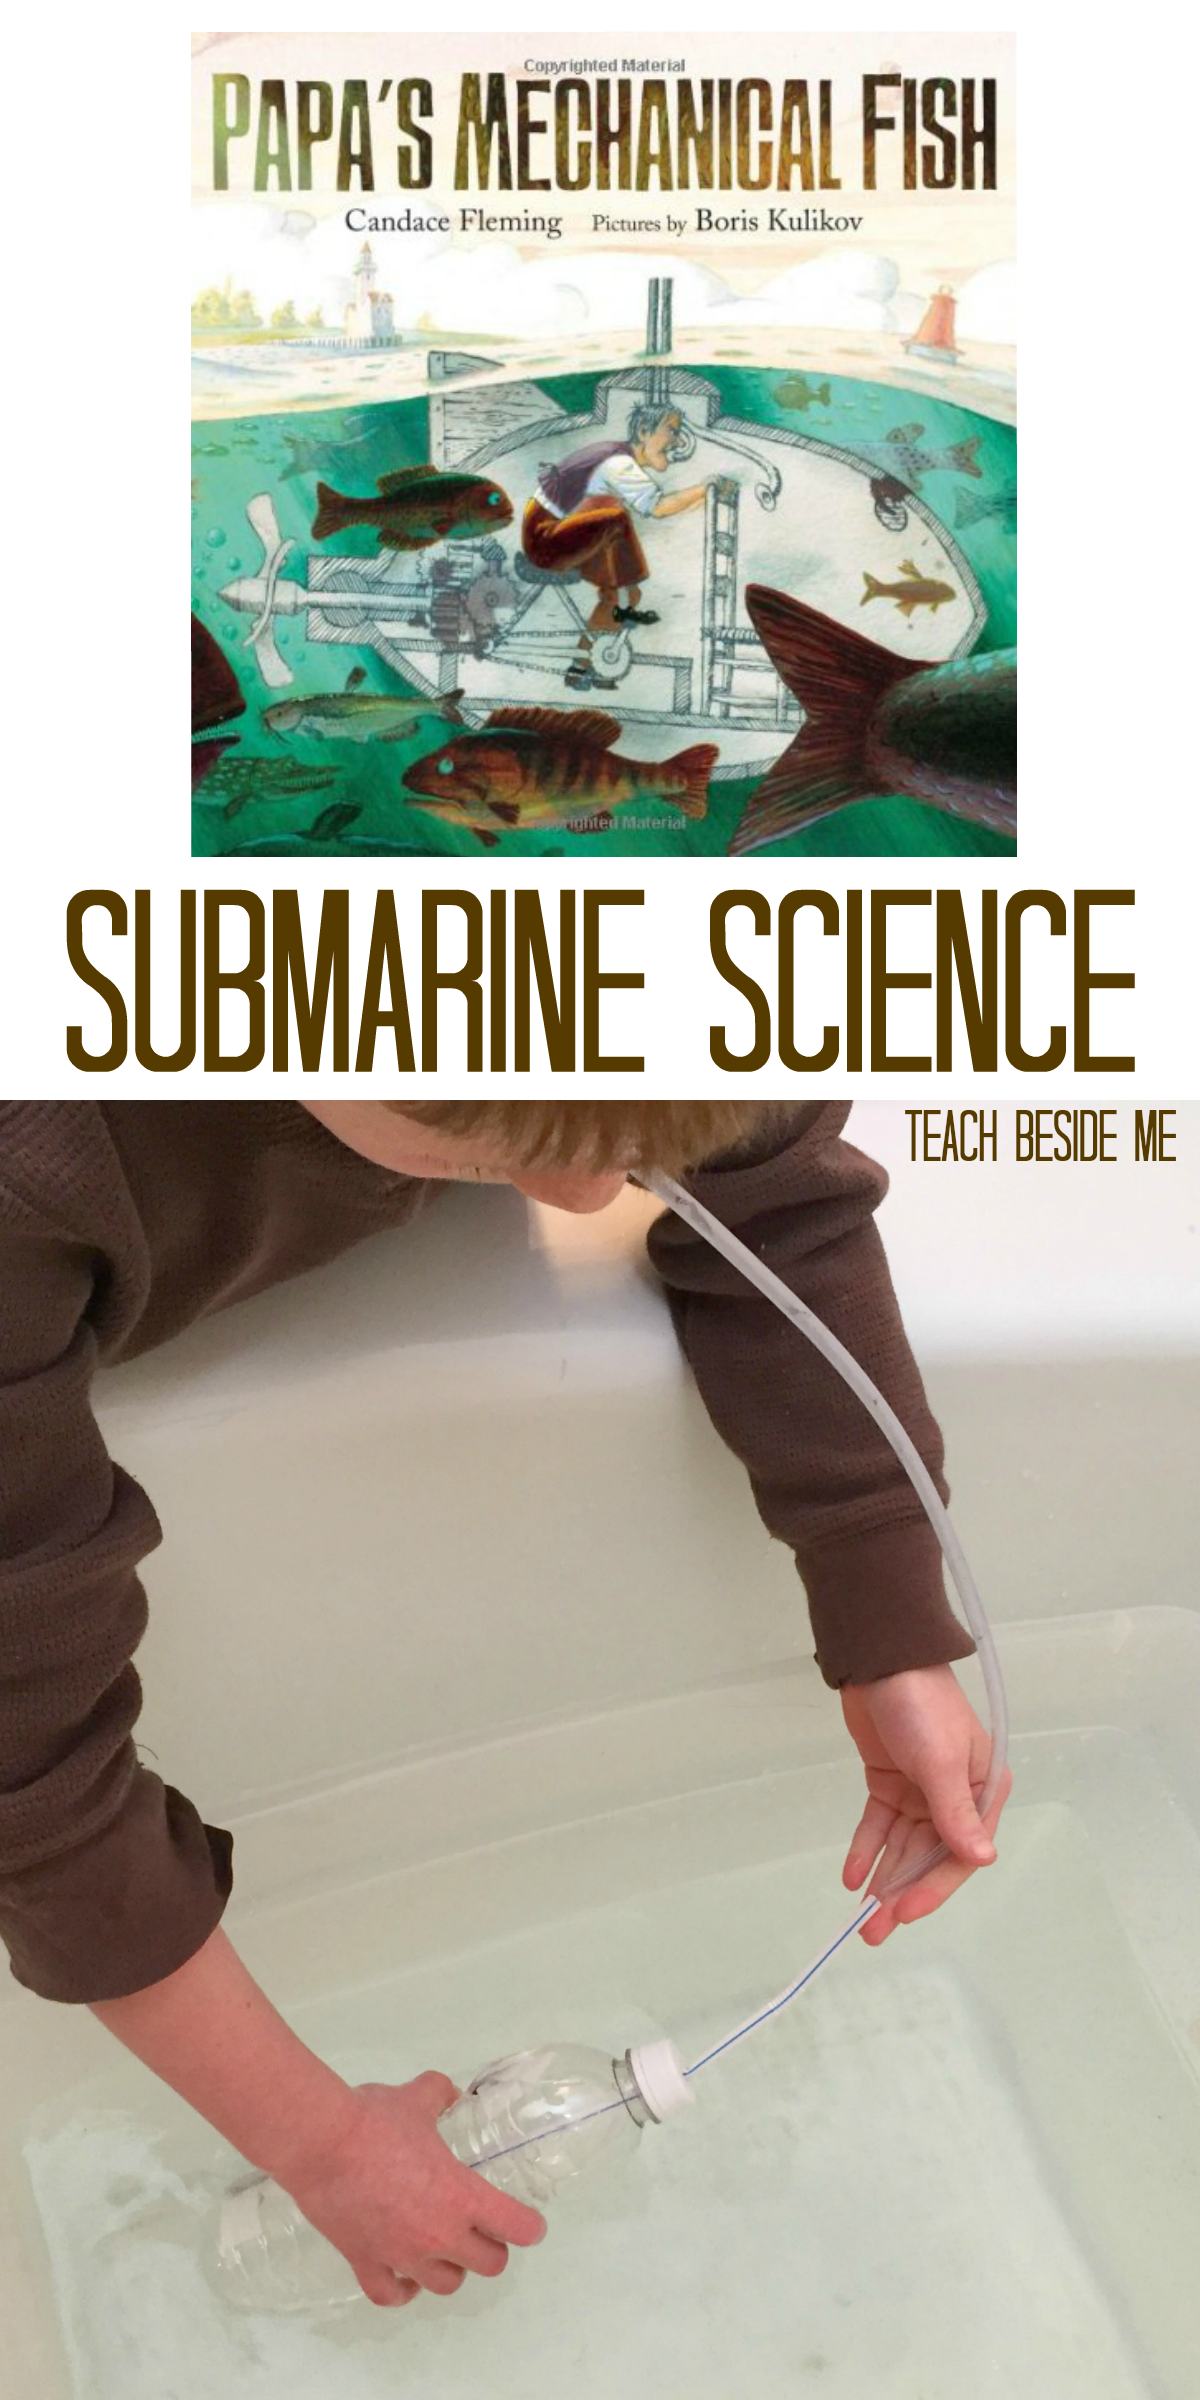 Submarine Science: Papa's Mechanical Fish